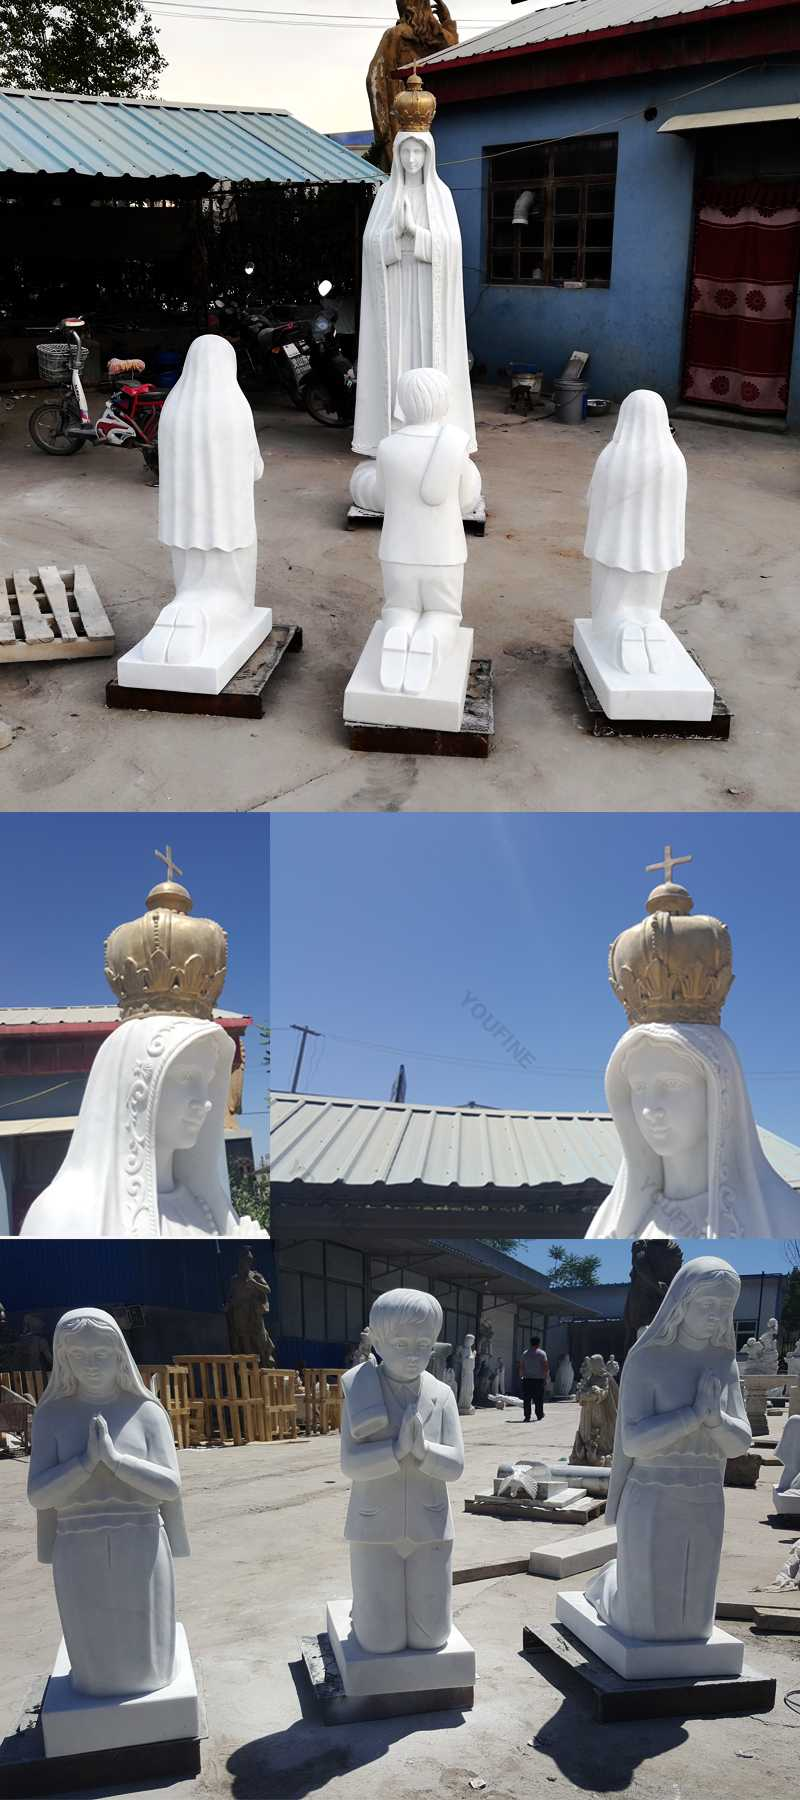 The details of catholic church sculptures design our lady of Fatima statues for sale